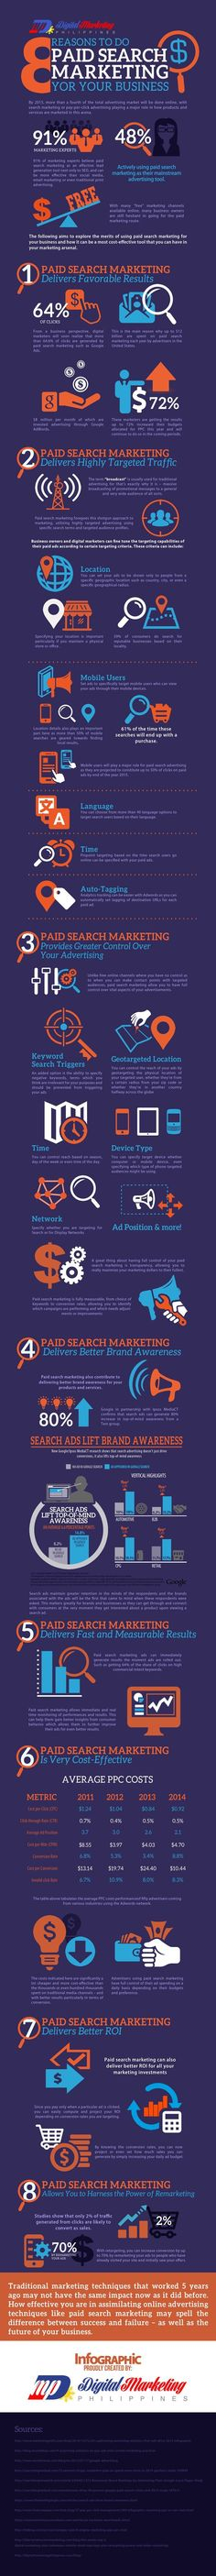 8 Reasons To Do Paid Search Marketing For Your Business #infographic #socialmediamarketing #smallbusiness